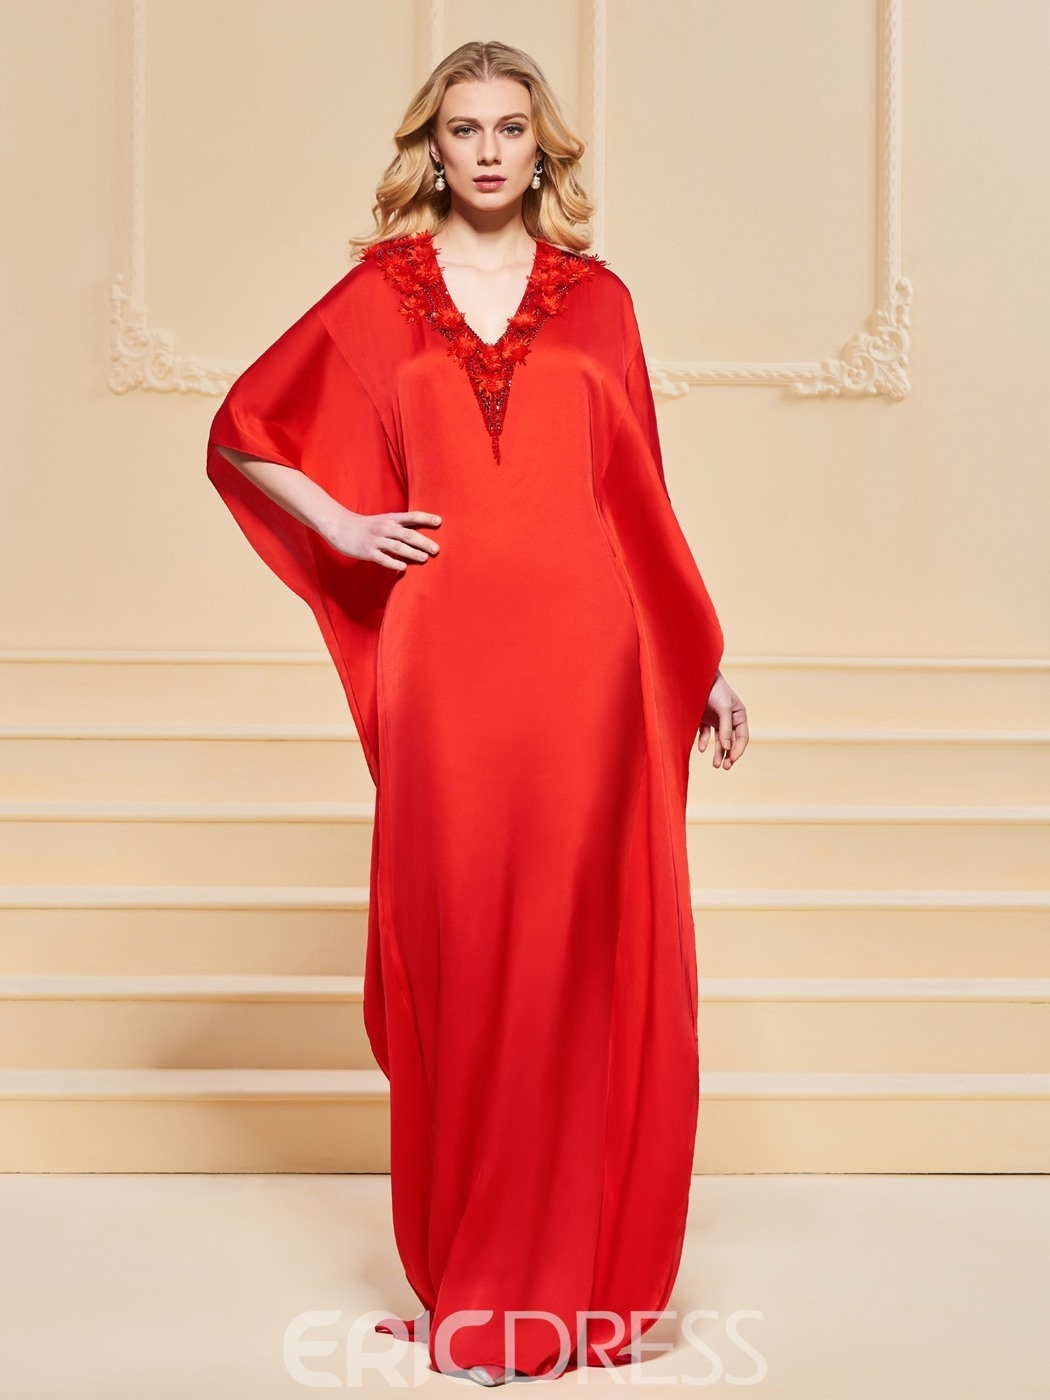 Coolste Rotes Abendkleid Stylish - Abendkleid